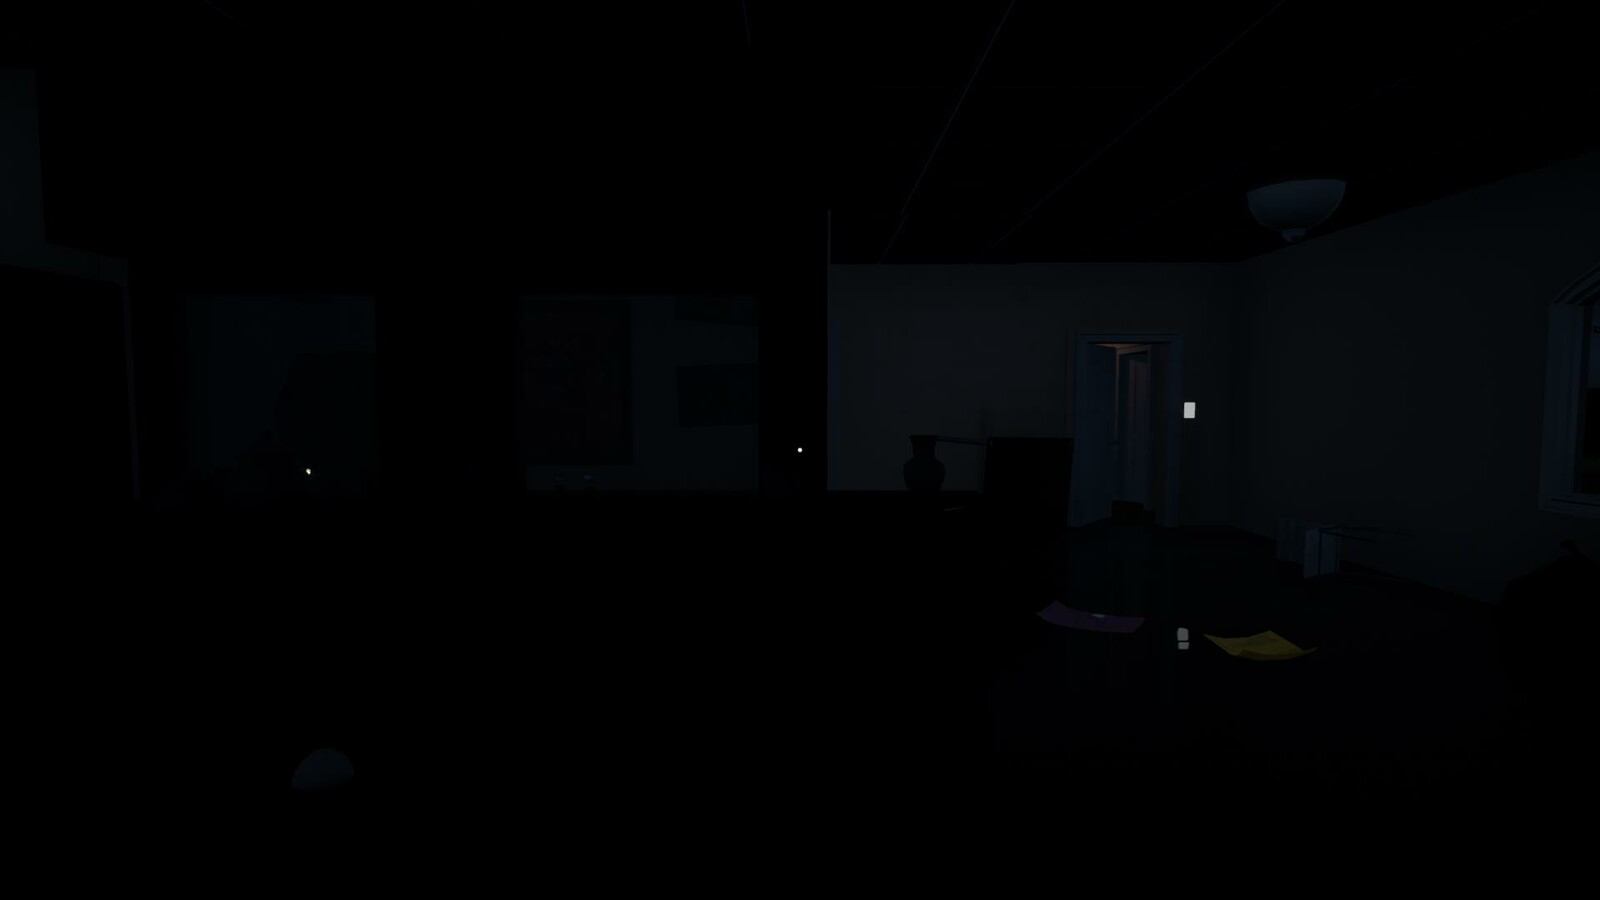 Kitchen area obscuring the player view to heighten tension yet guiding with light and geometry towards doors